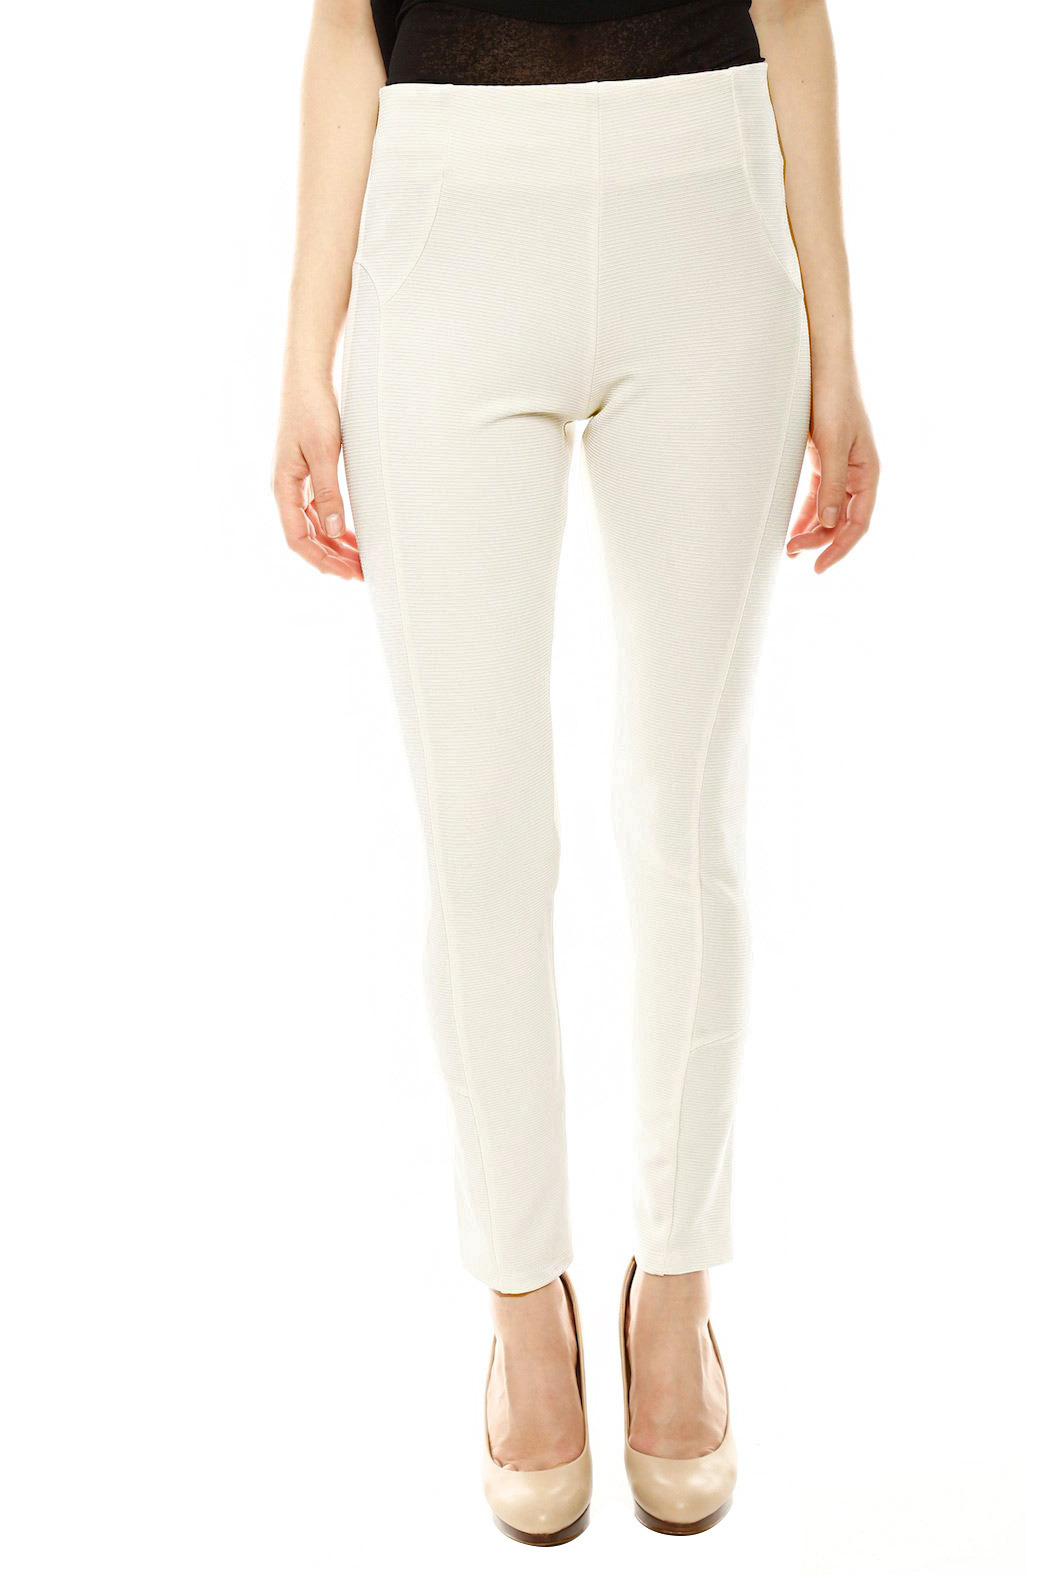 Gracia Ribbed Riding Pant - Main Image